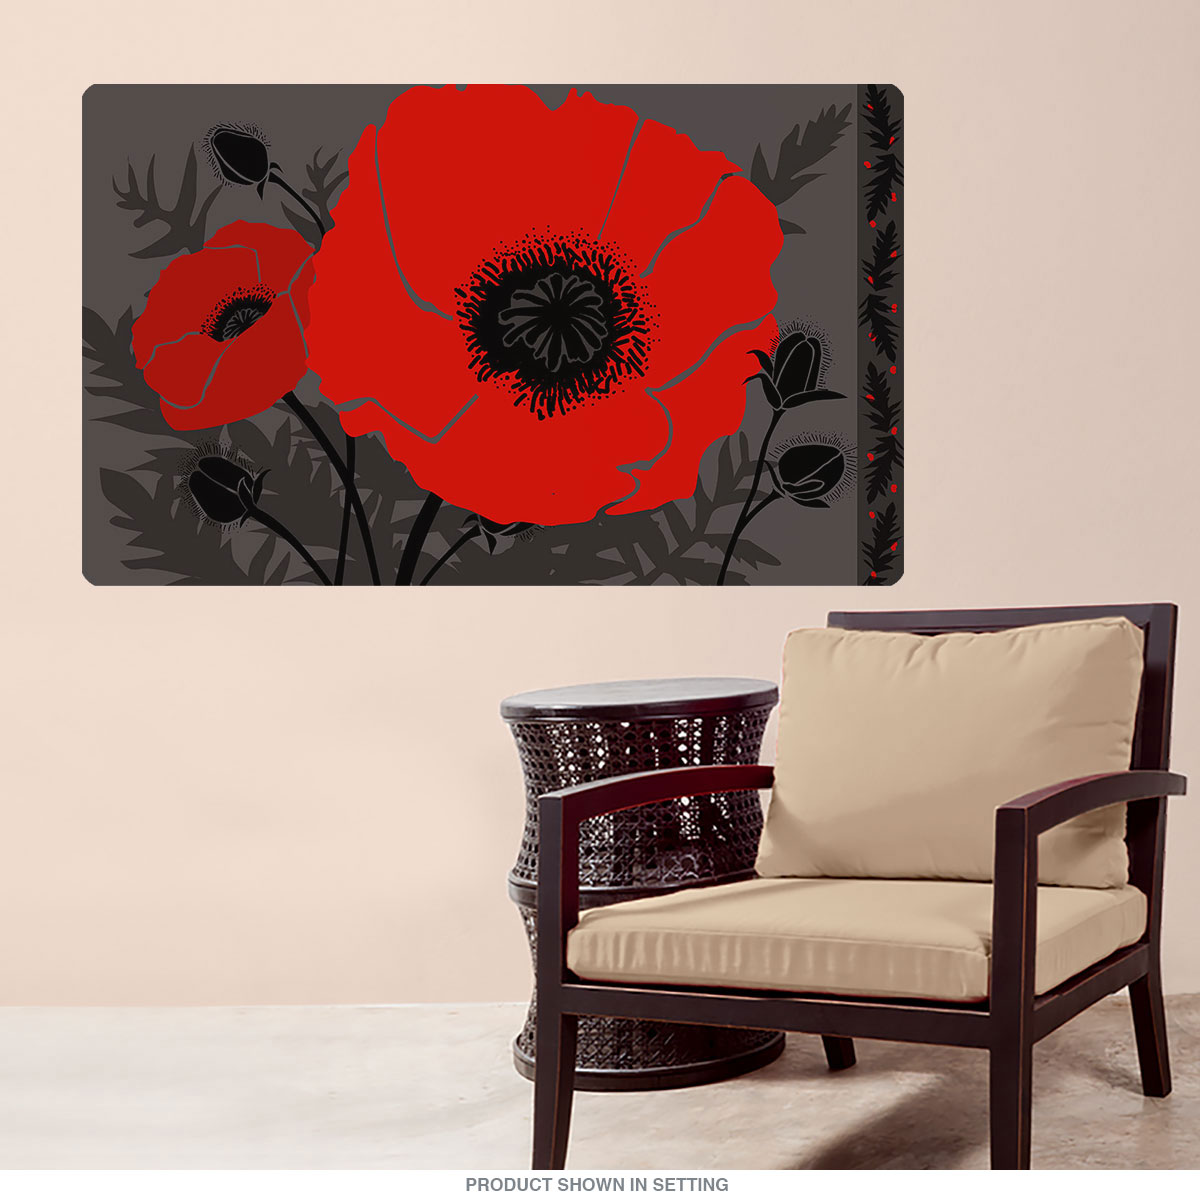 Beautes Rouges Little Big Flower Wall Decal Floral Decor